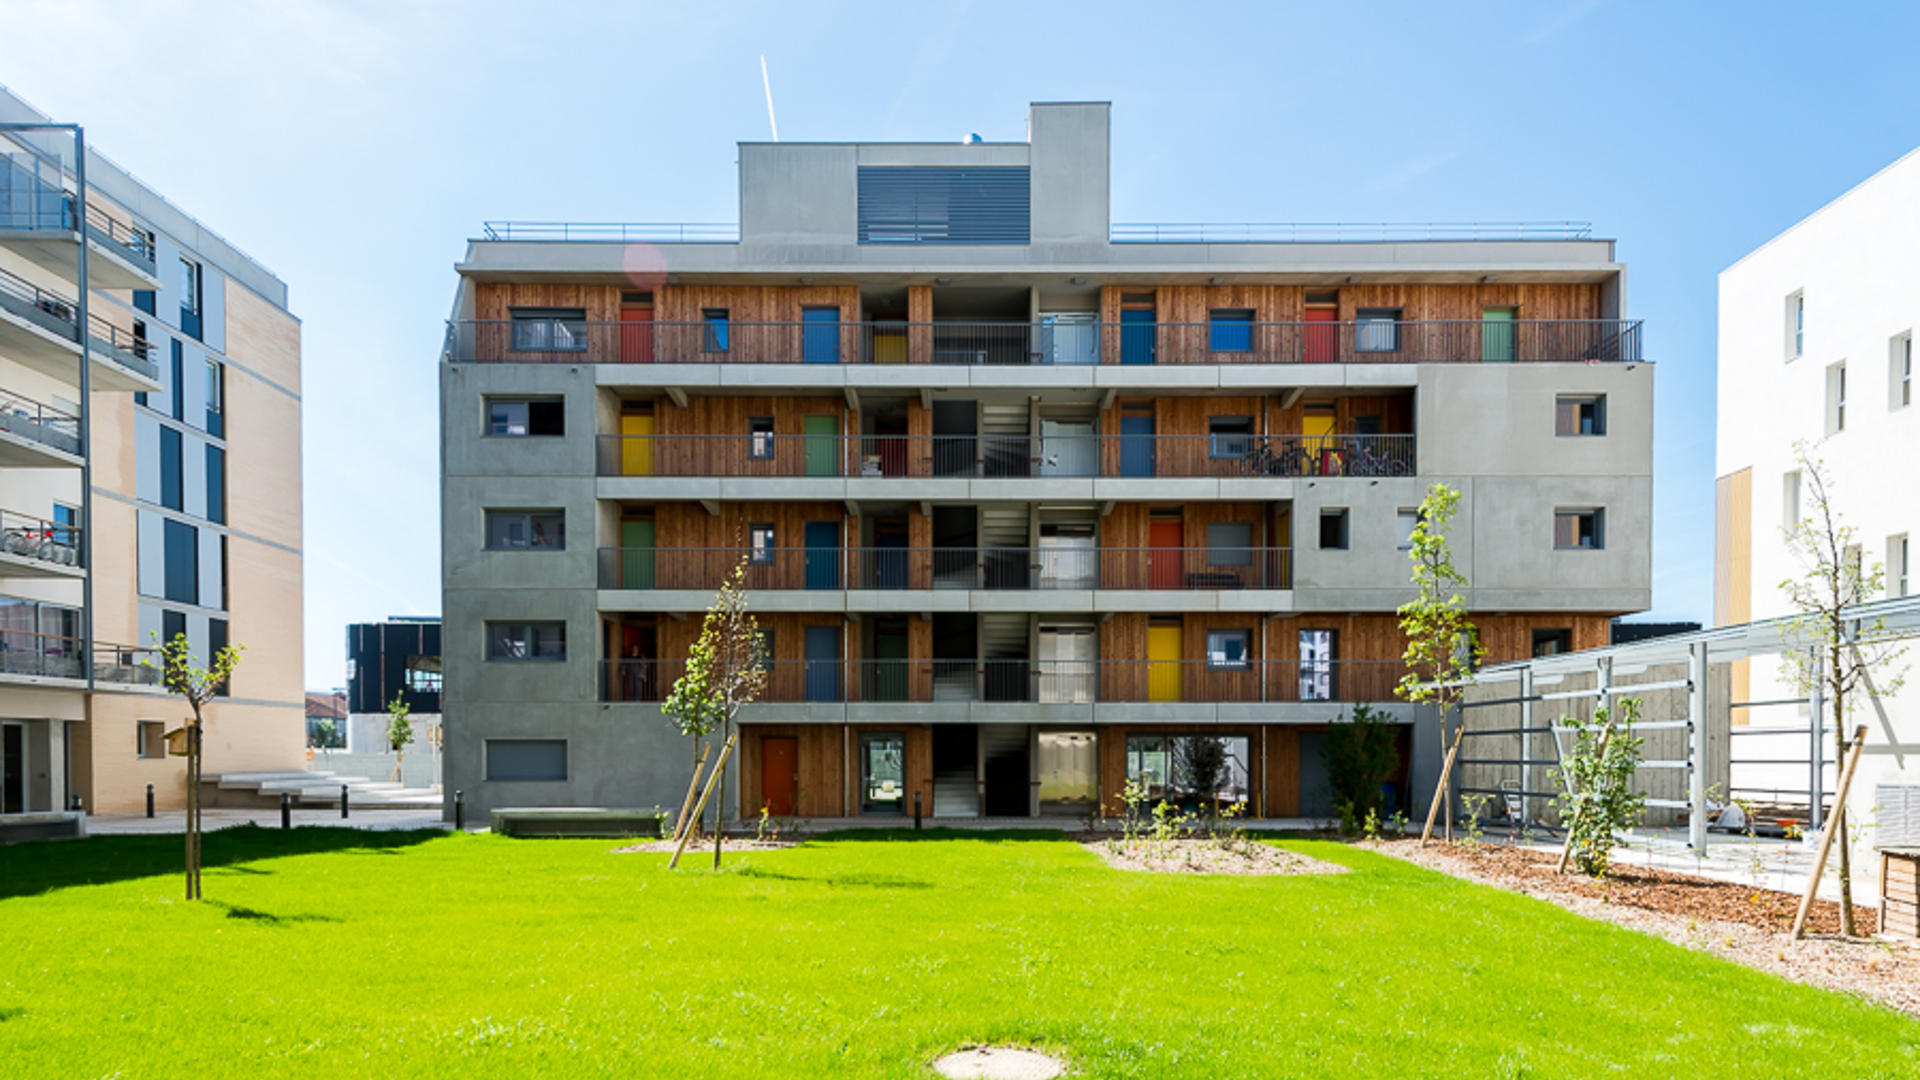 Seuil-architecture-Abricoop-façade-nord-slid